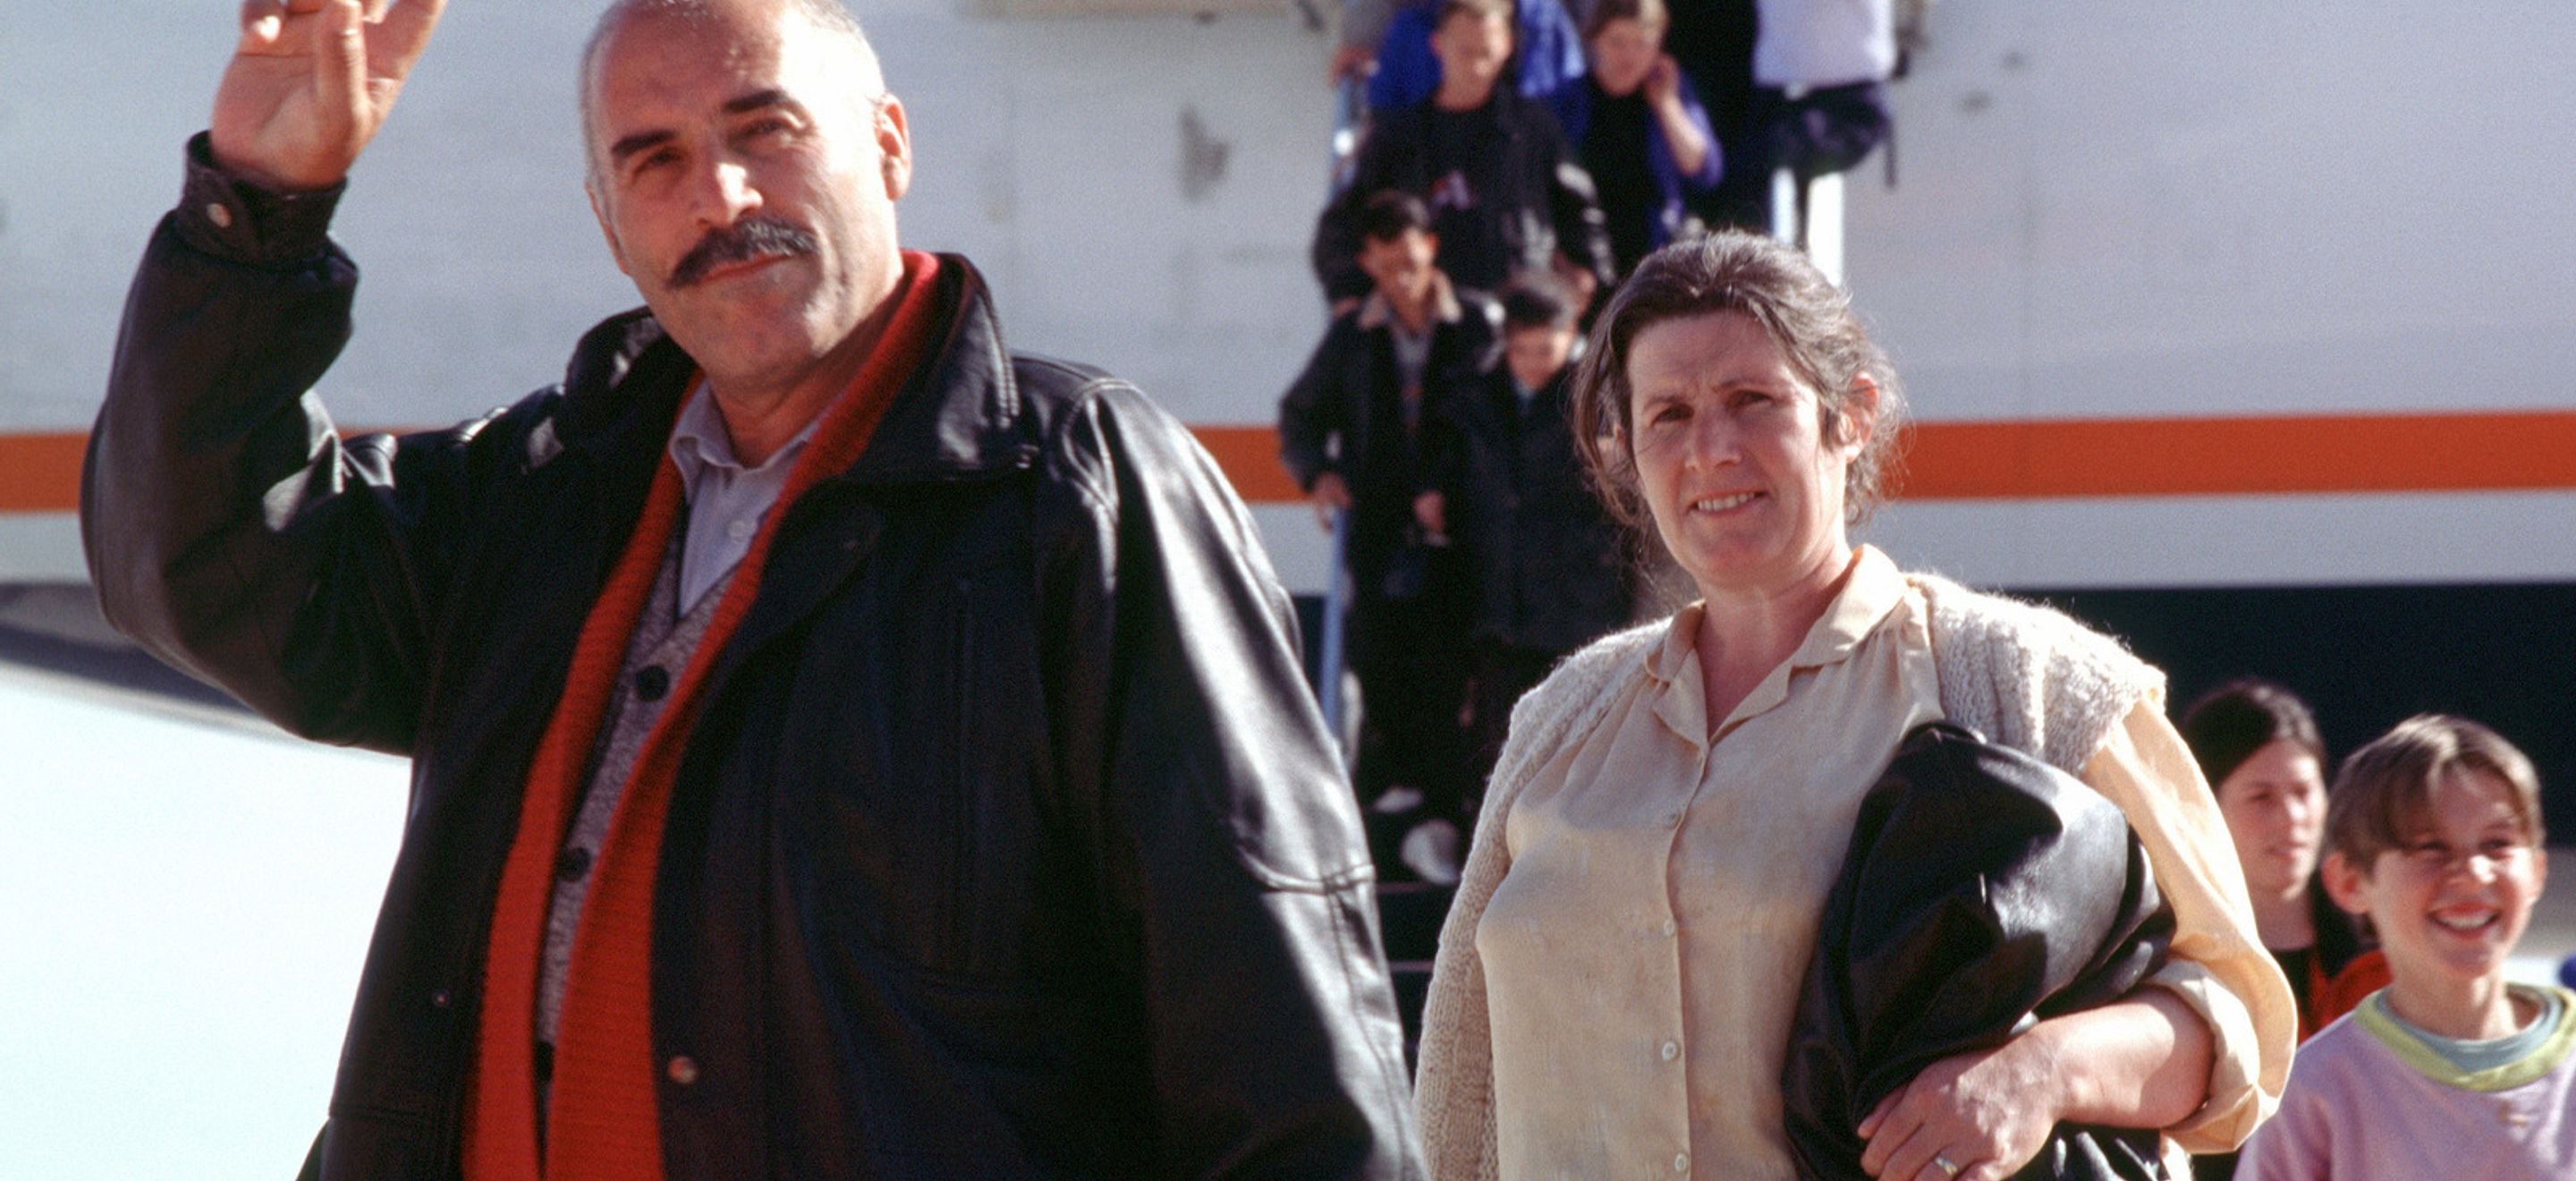 Kosovar refugees arriving in the United States. In the background, a plane is partially visible, with several of the refugees - many of them children - descending a metal staircase onto the tarmac. In the foreground, are a man and a woman from Kosovo. The man has olive colored skin and holds up a peace sign. He is almost bald, with some short white hair visible. He has a full mustache and dark brown eyebrows. He wears a leather jacket with a red wool sweater underneath. A woman with fair white skin and brown hair pulled back wears a beige blouse with a beige wool sweater and holds a brown leather jacket in her left hand.